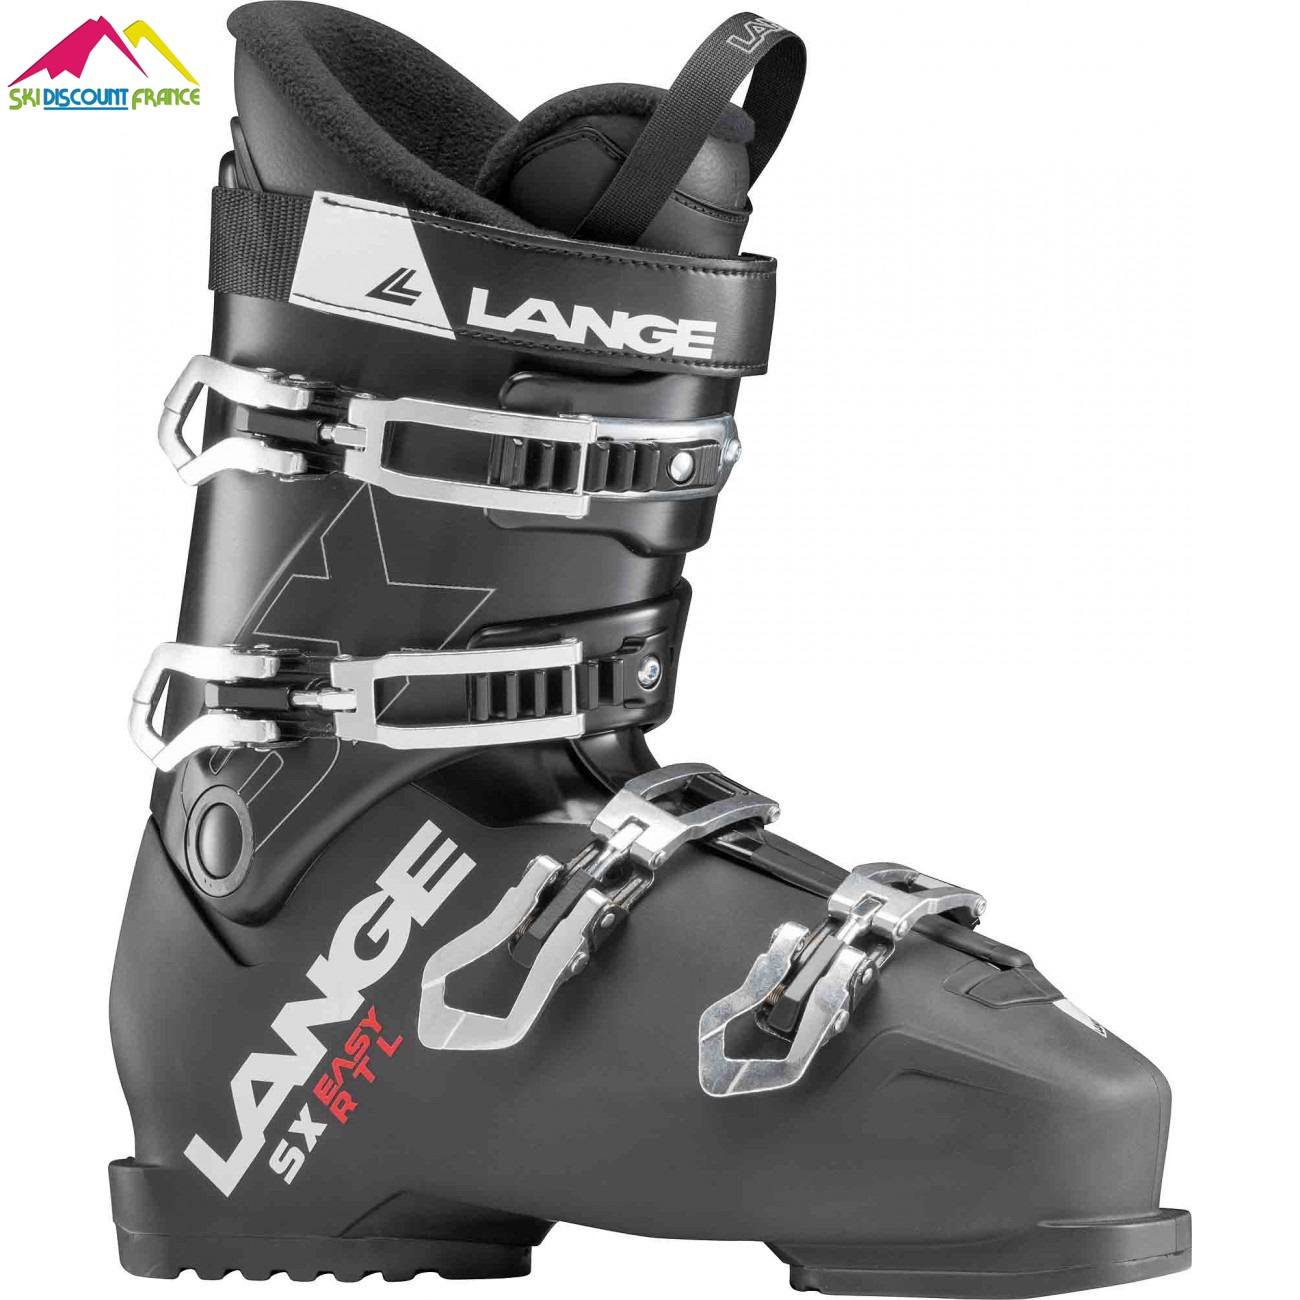 Chaussures de ski Neuves Lange SX RTL Easy Black 2018